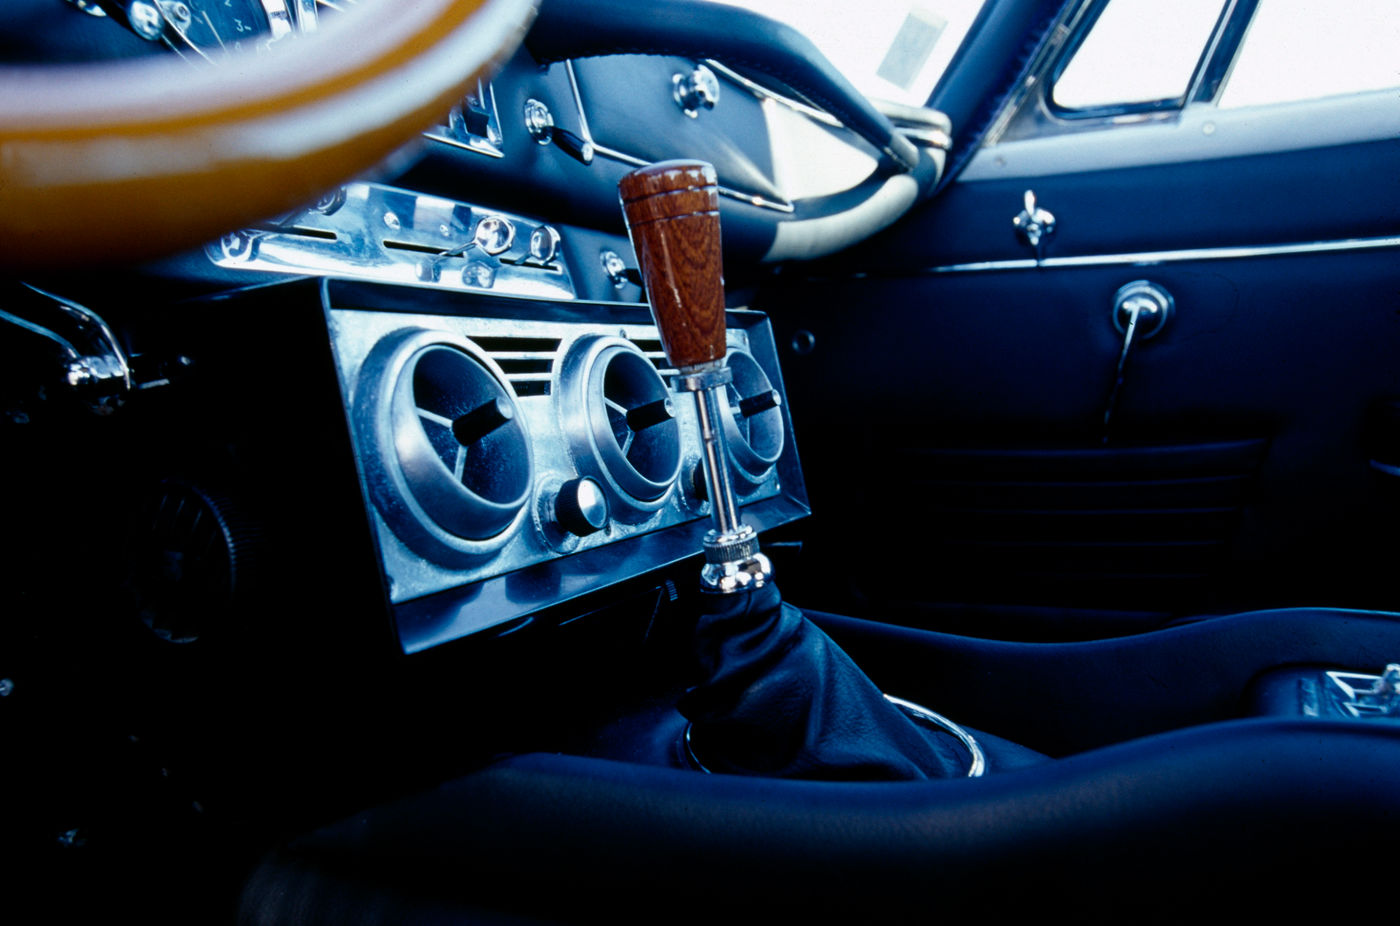 1964 Maserati Mistral - interior view of the classic sports car model